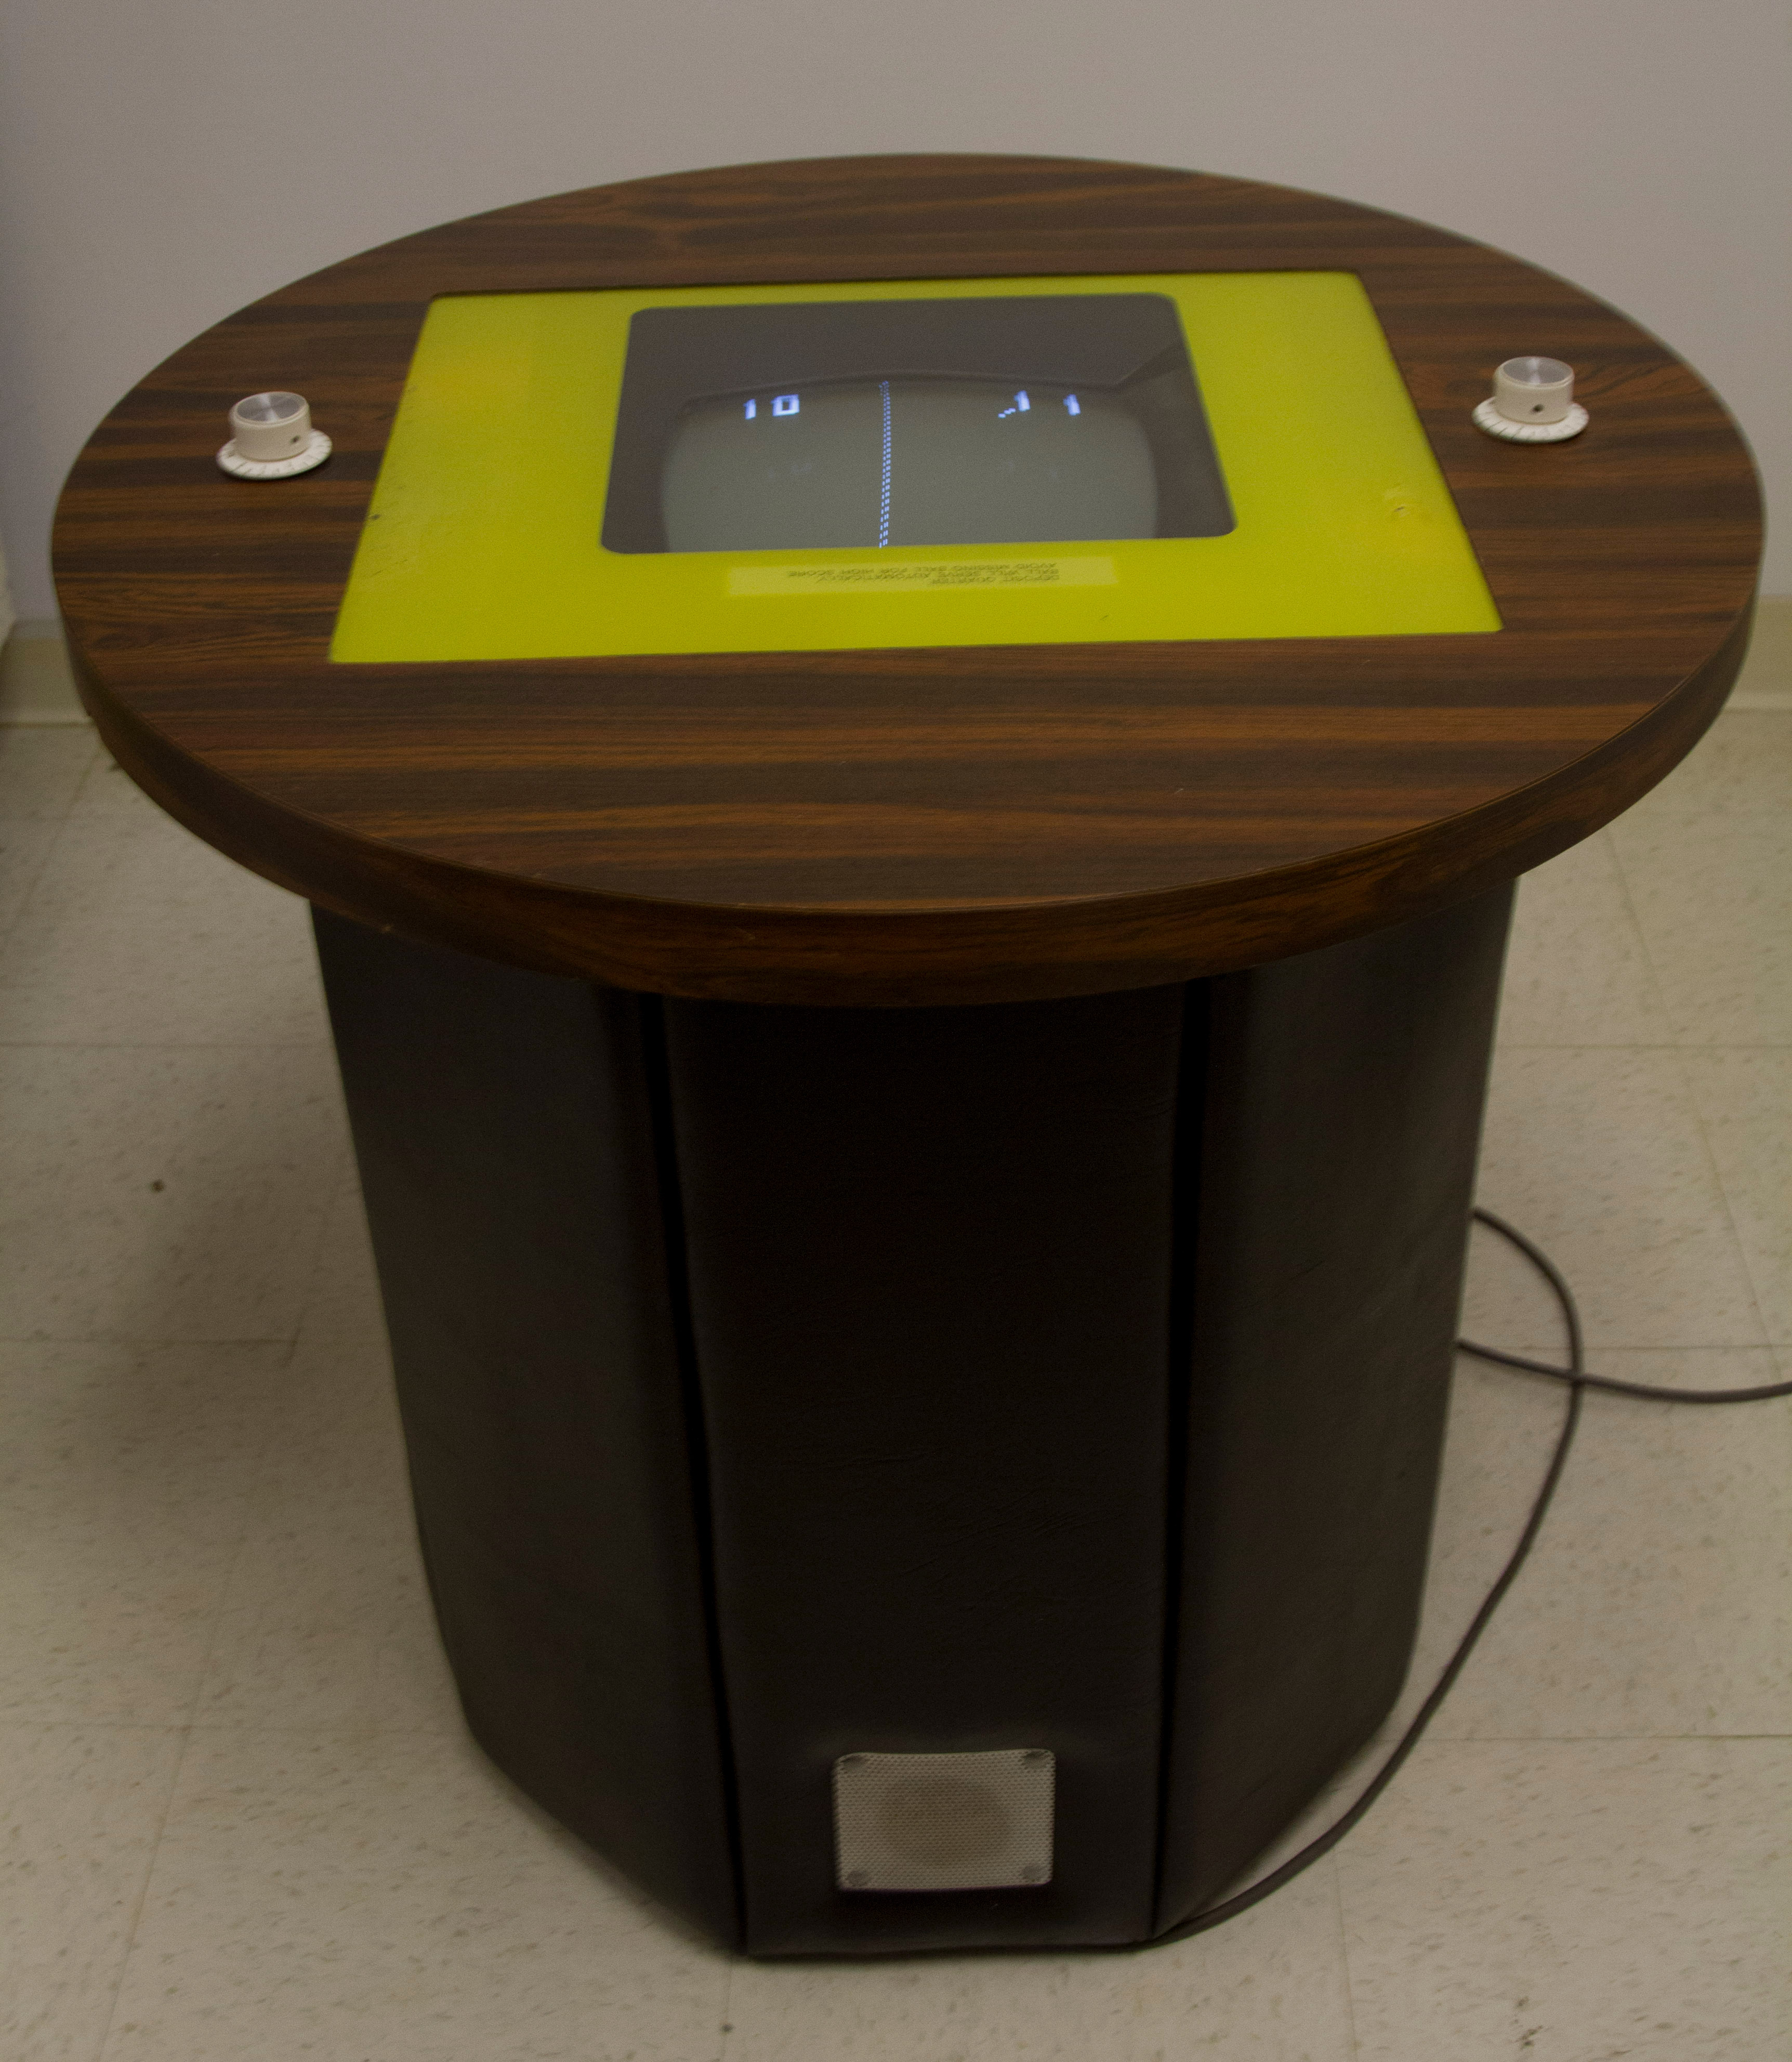 Atari Pong Cocktail Table Arcade Game · Digital Game Museum Collection